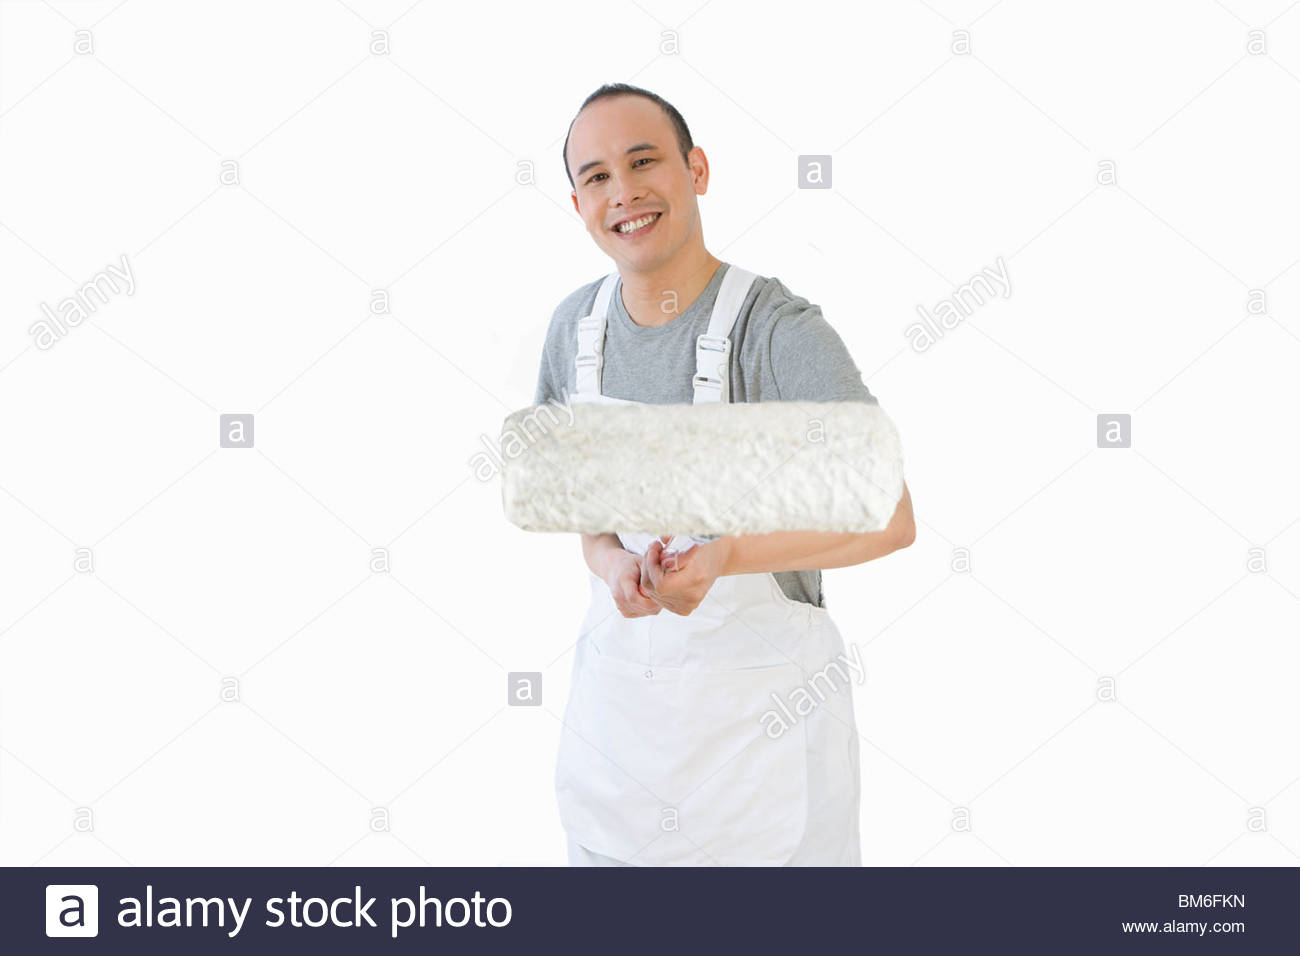 Smiling painter holding paint roller - Stock Image